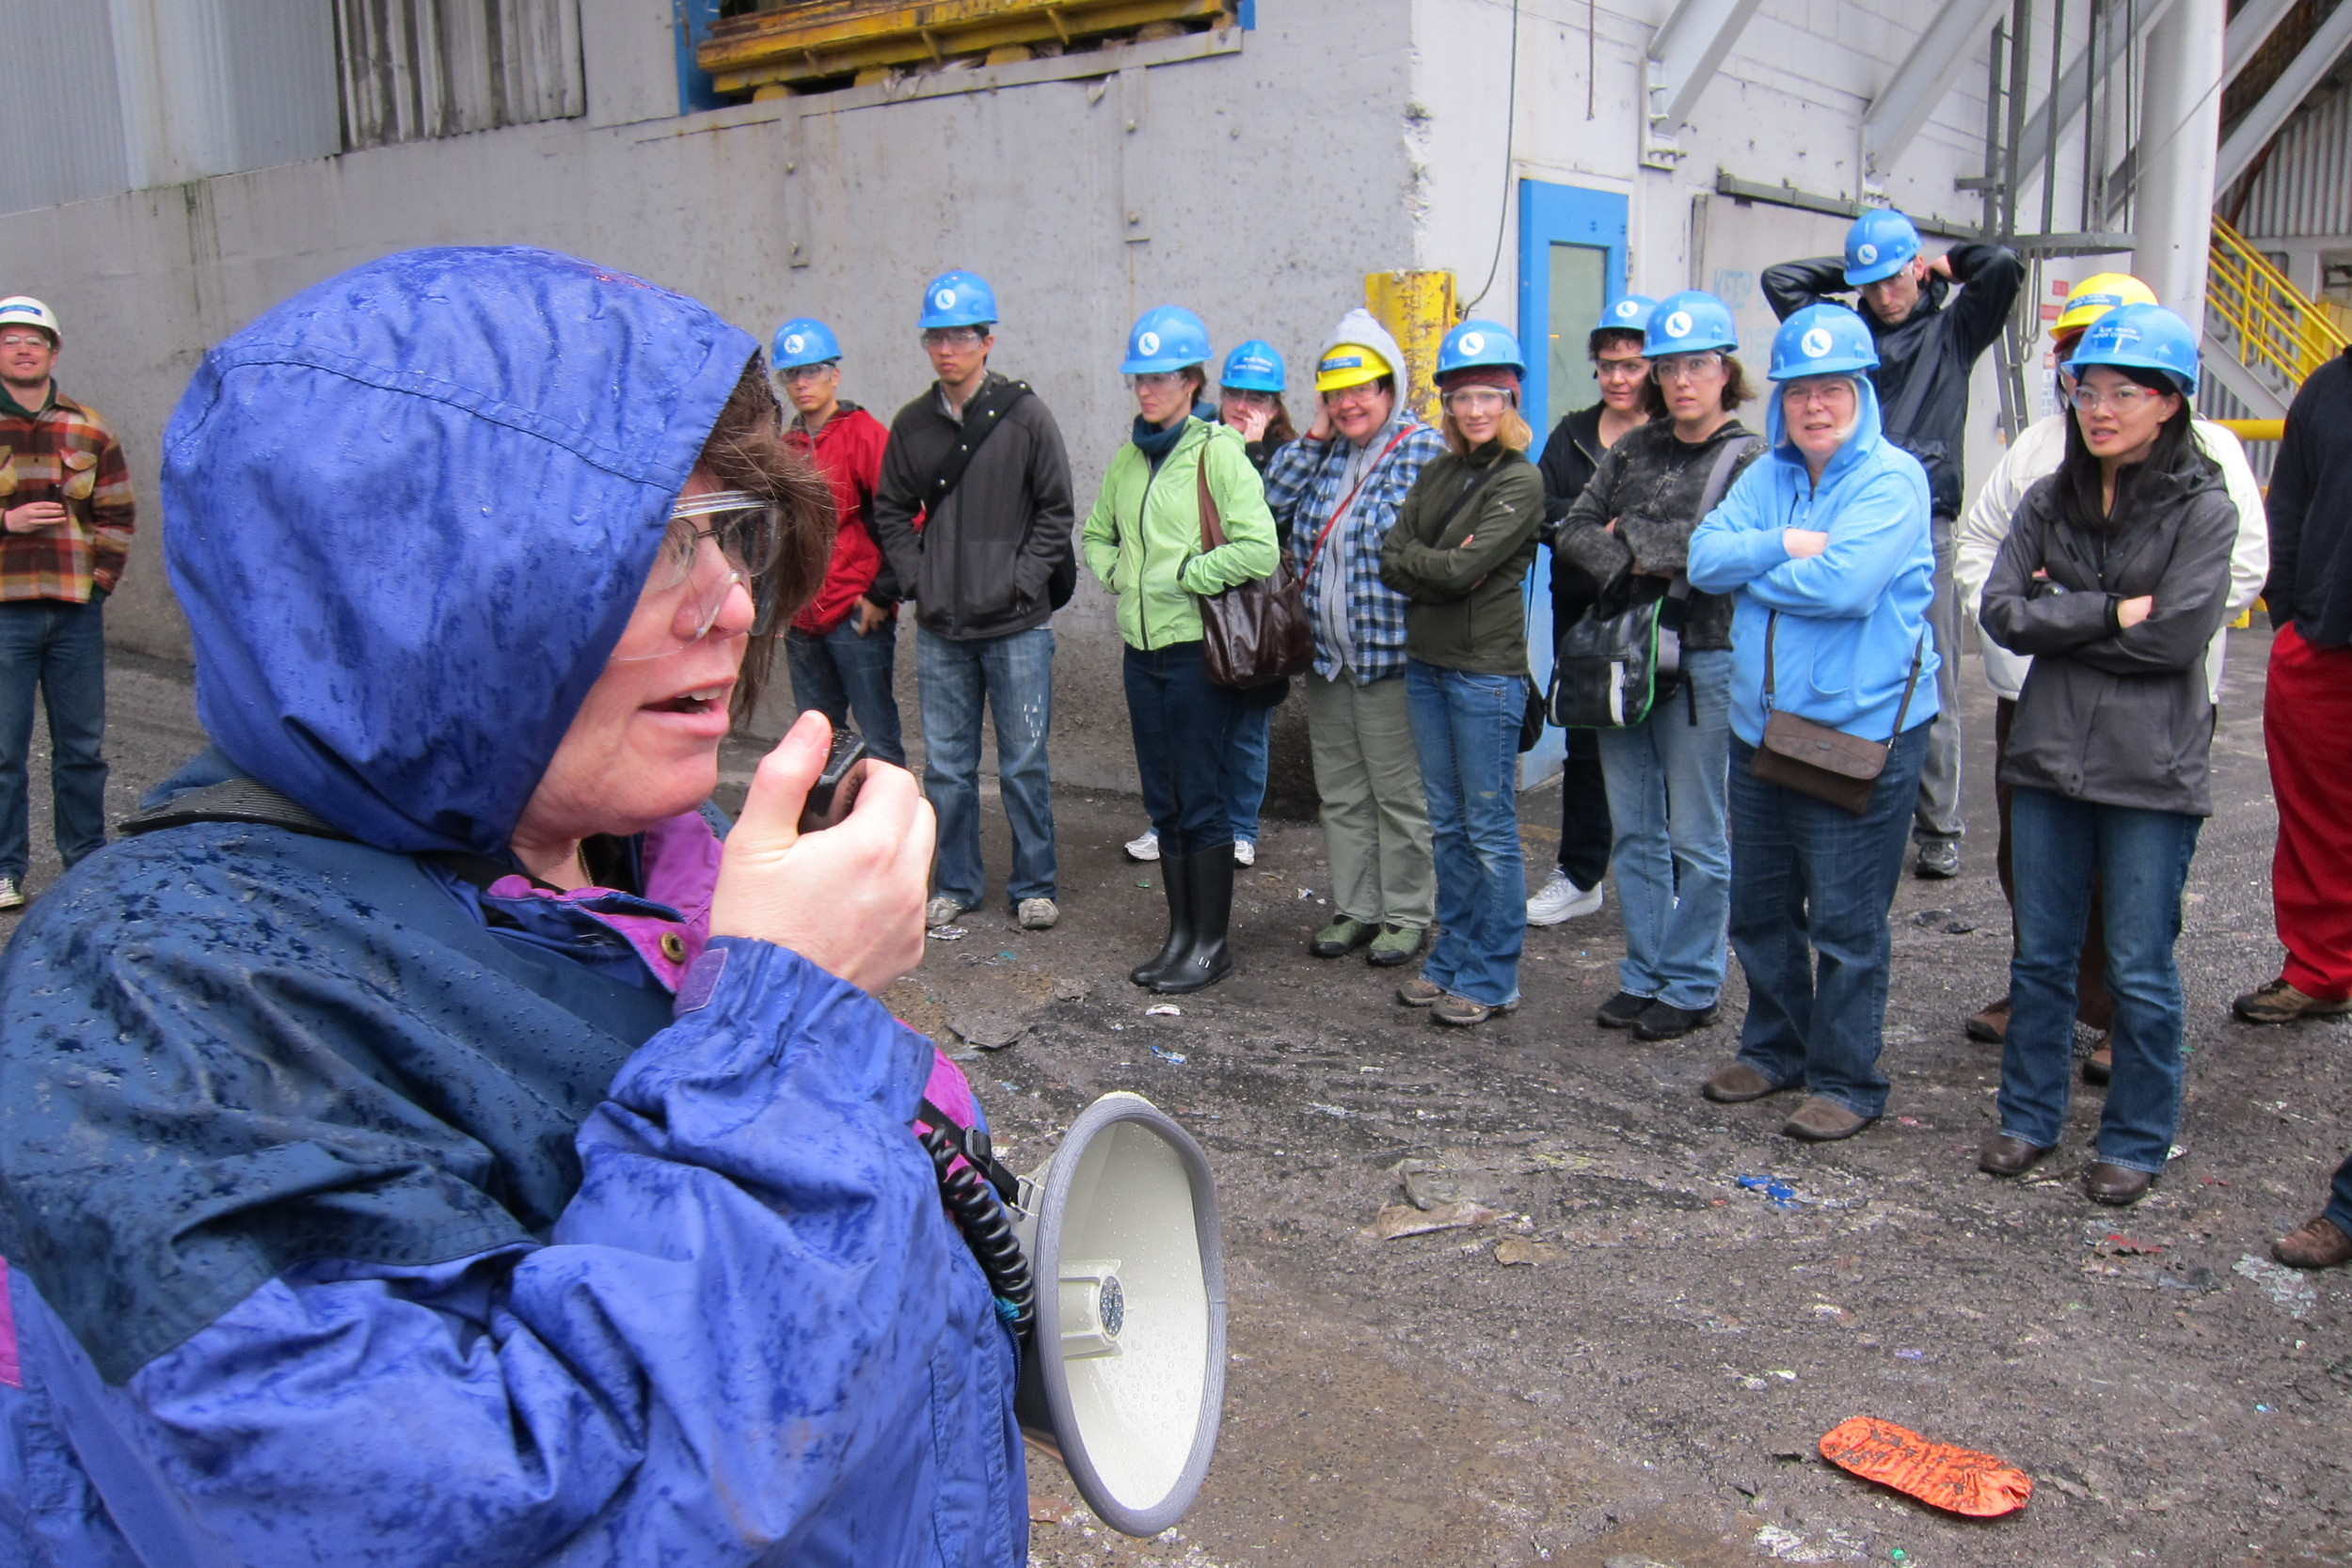 Janet takes Class 48 on Tour of Blue Heron Paper mill